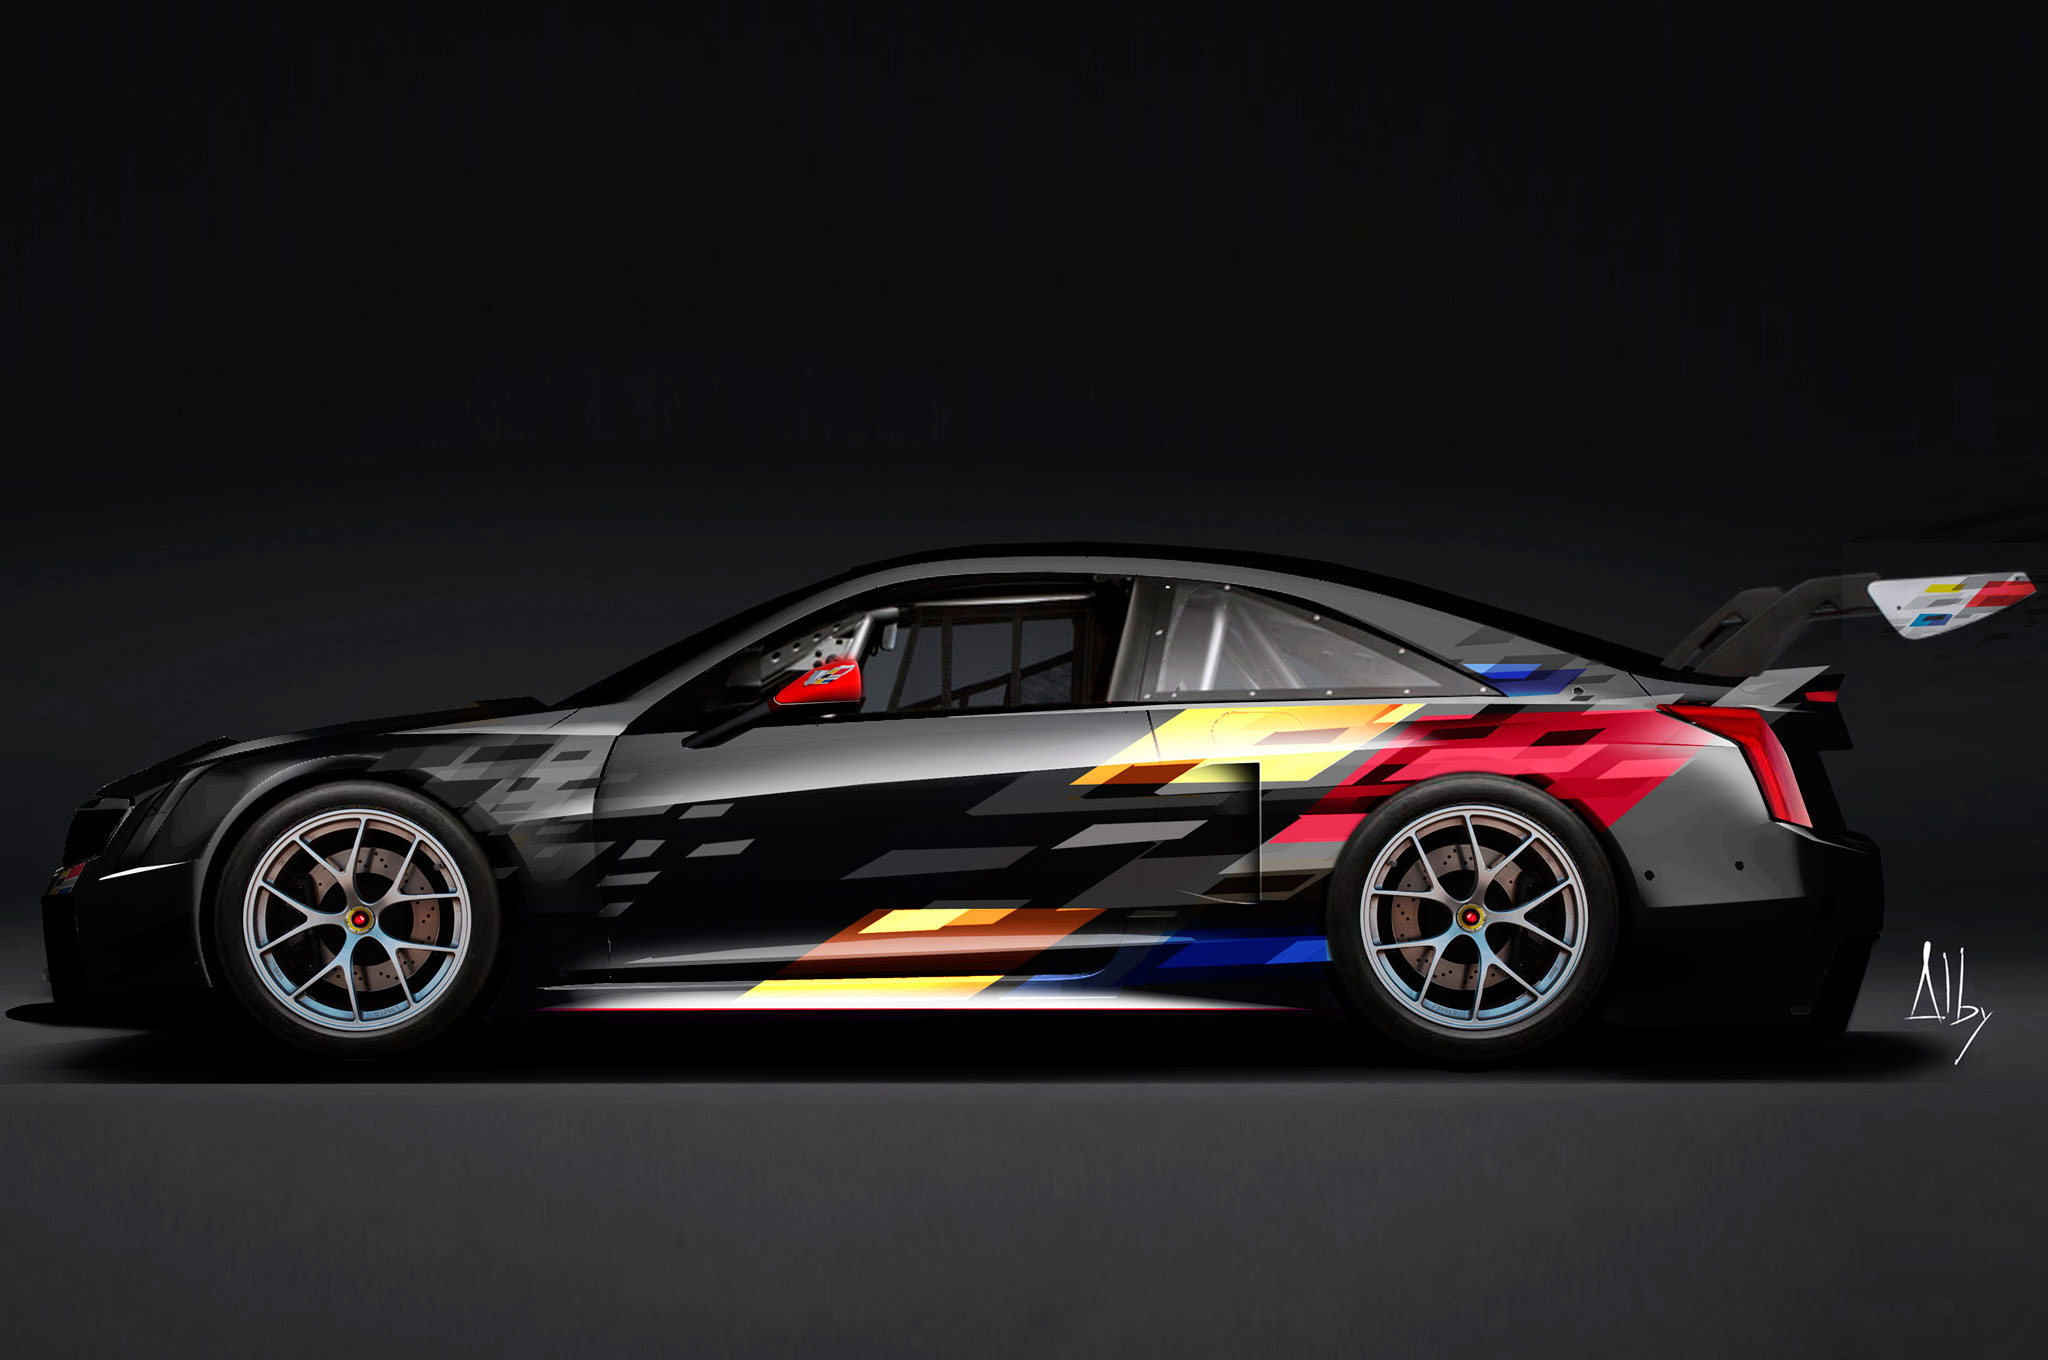 cadillac reveals 2016 ats v r racing car. Black Bedroom Furniture Sets. Home Design Ideas